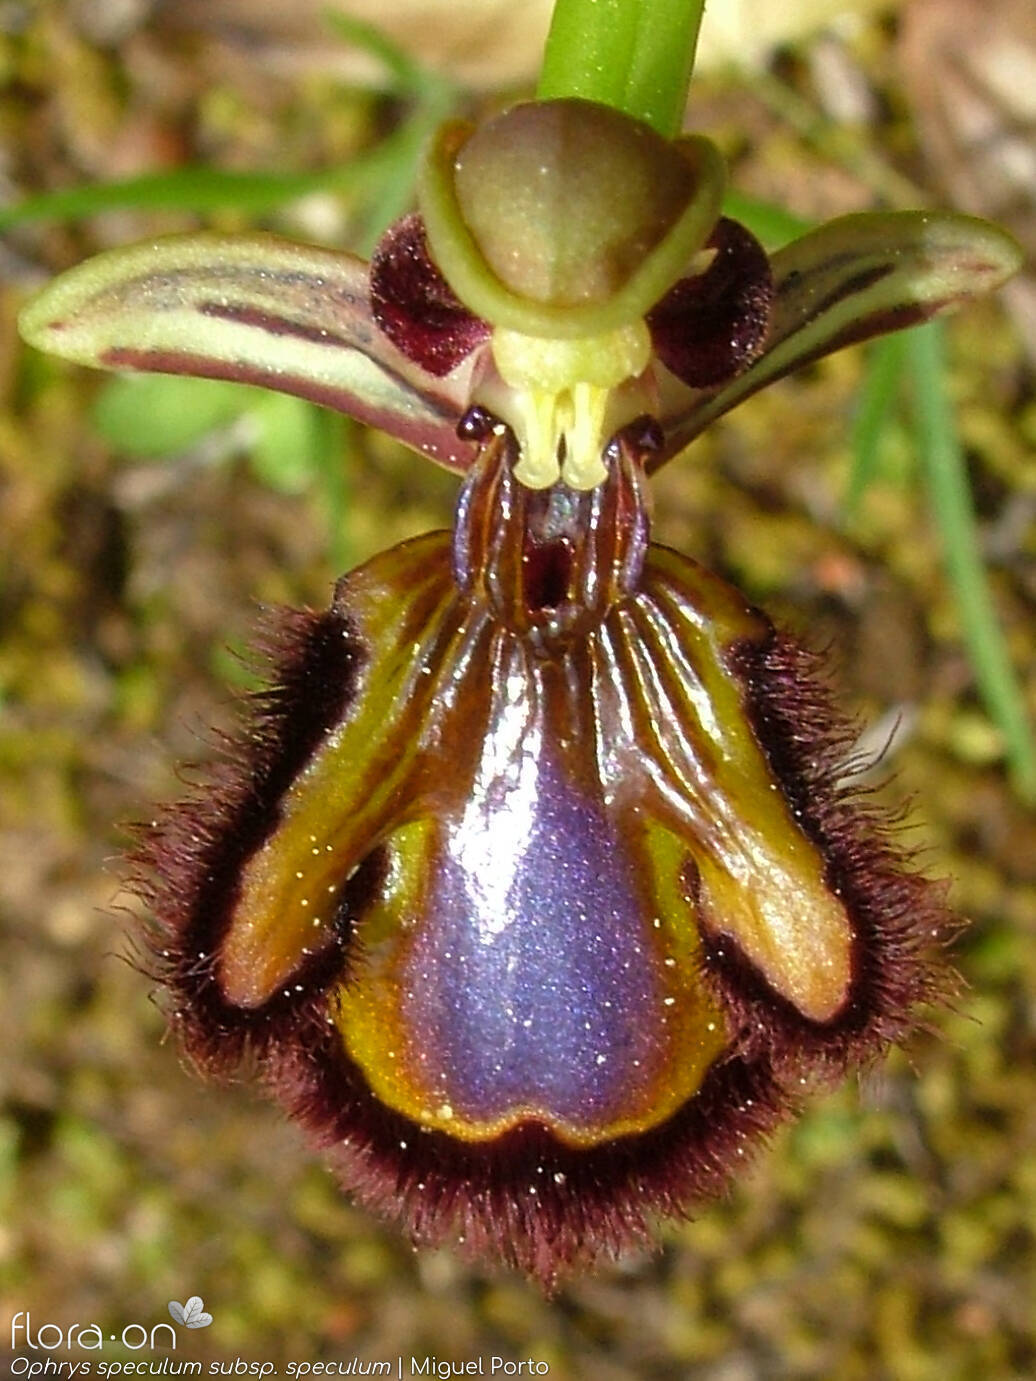 Ophrys speculum - Flor (close-up) | Miguel Porto; CC BY-NC 4.0